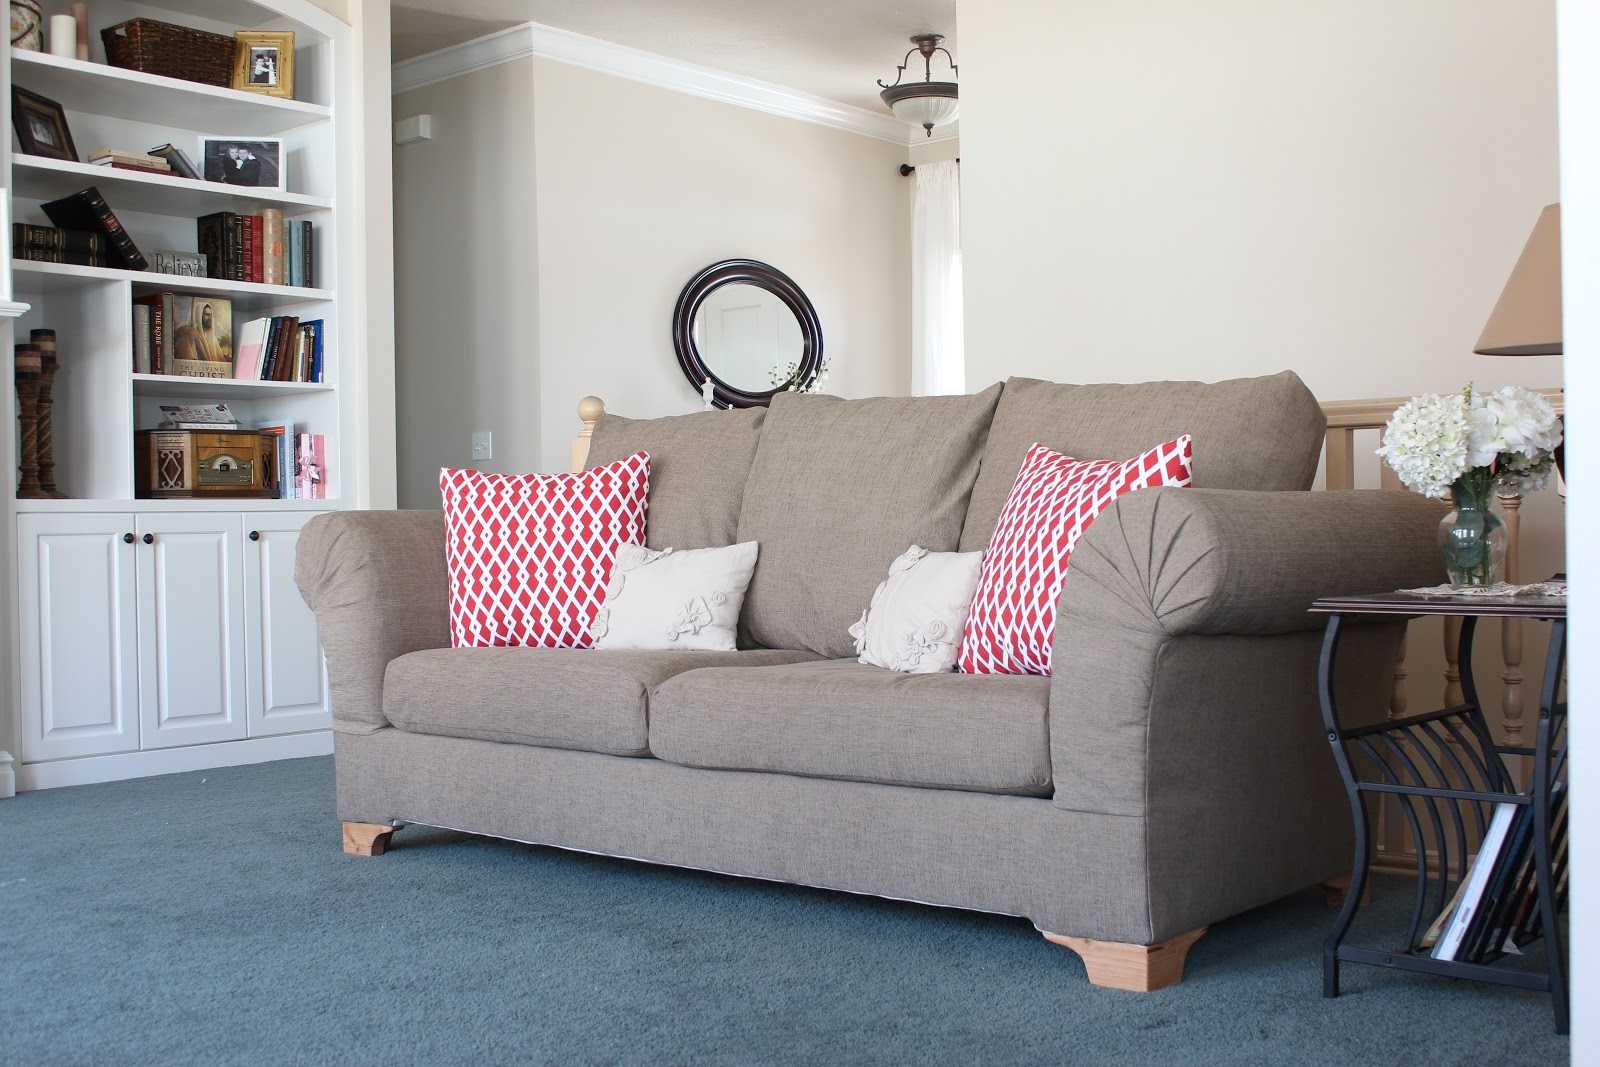 How to Effectively Replace Your Couch Filling